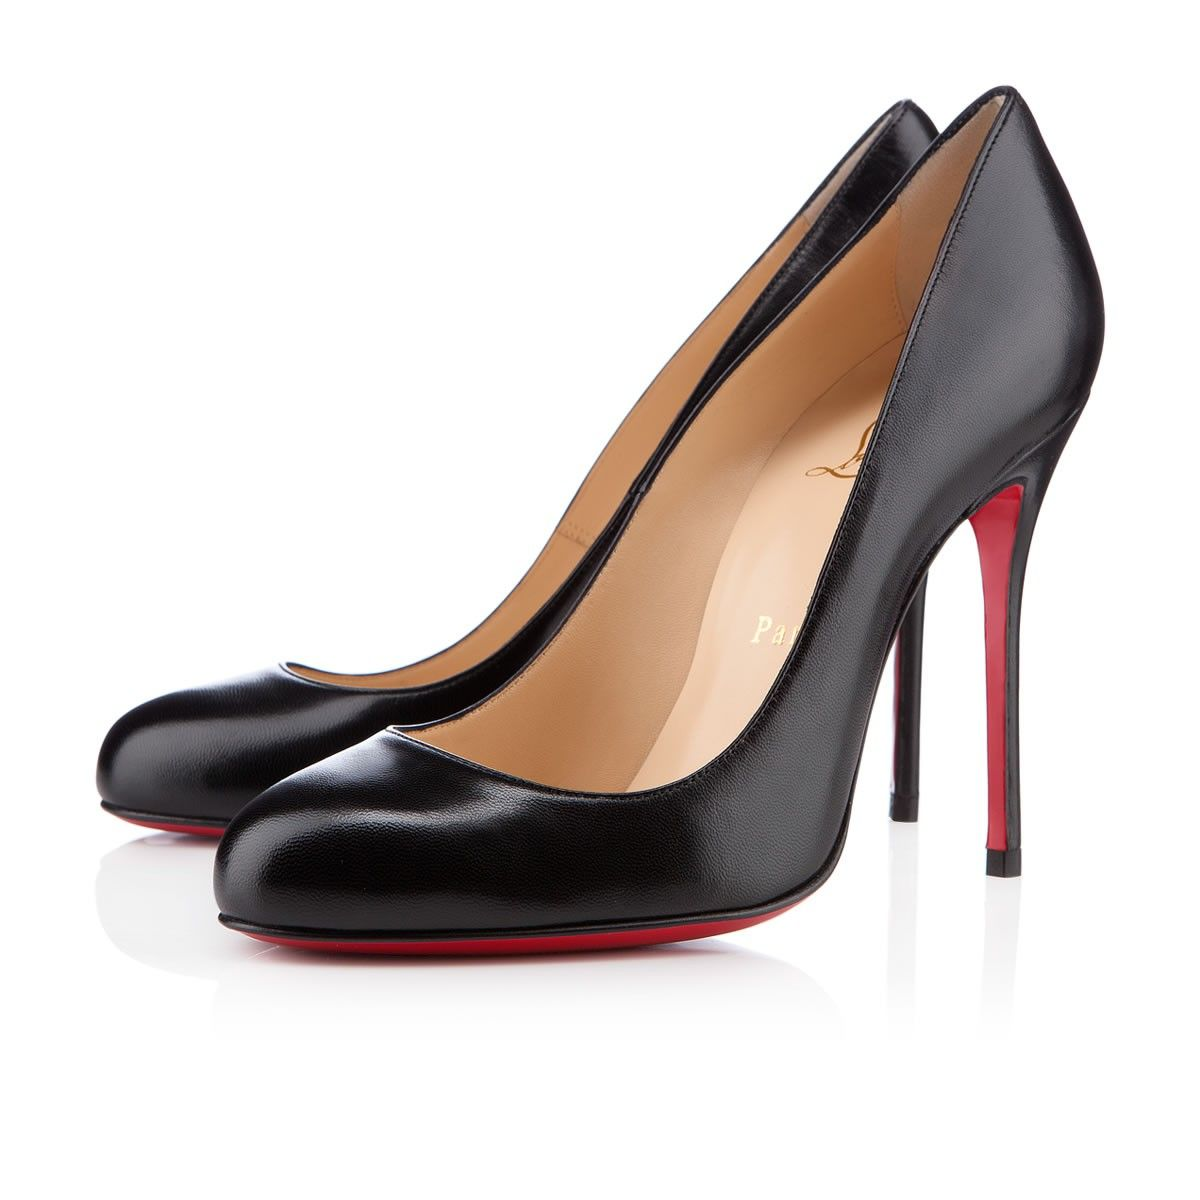 fifi 100 mm chevreau noir escarpins pour femme christian louboutin pickture. Black Bedroom Furniture Sets. Home Design Ideas